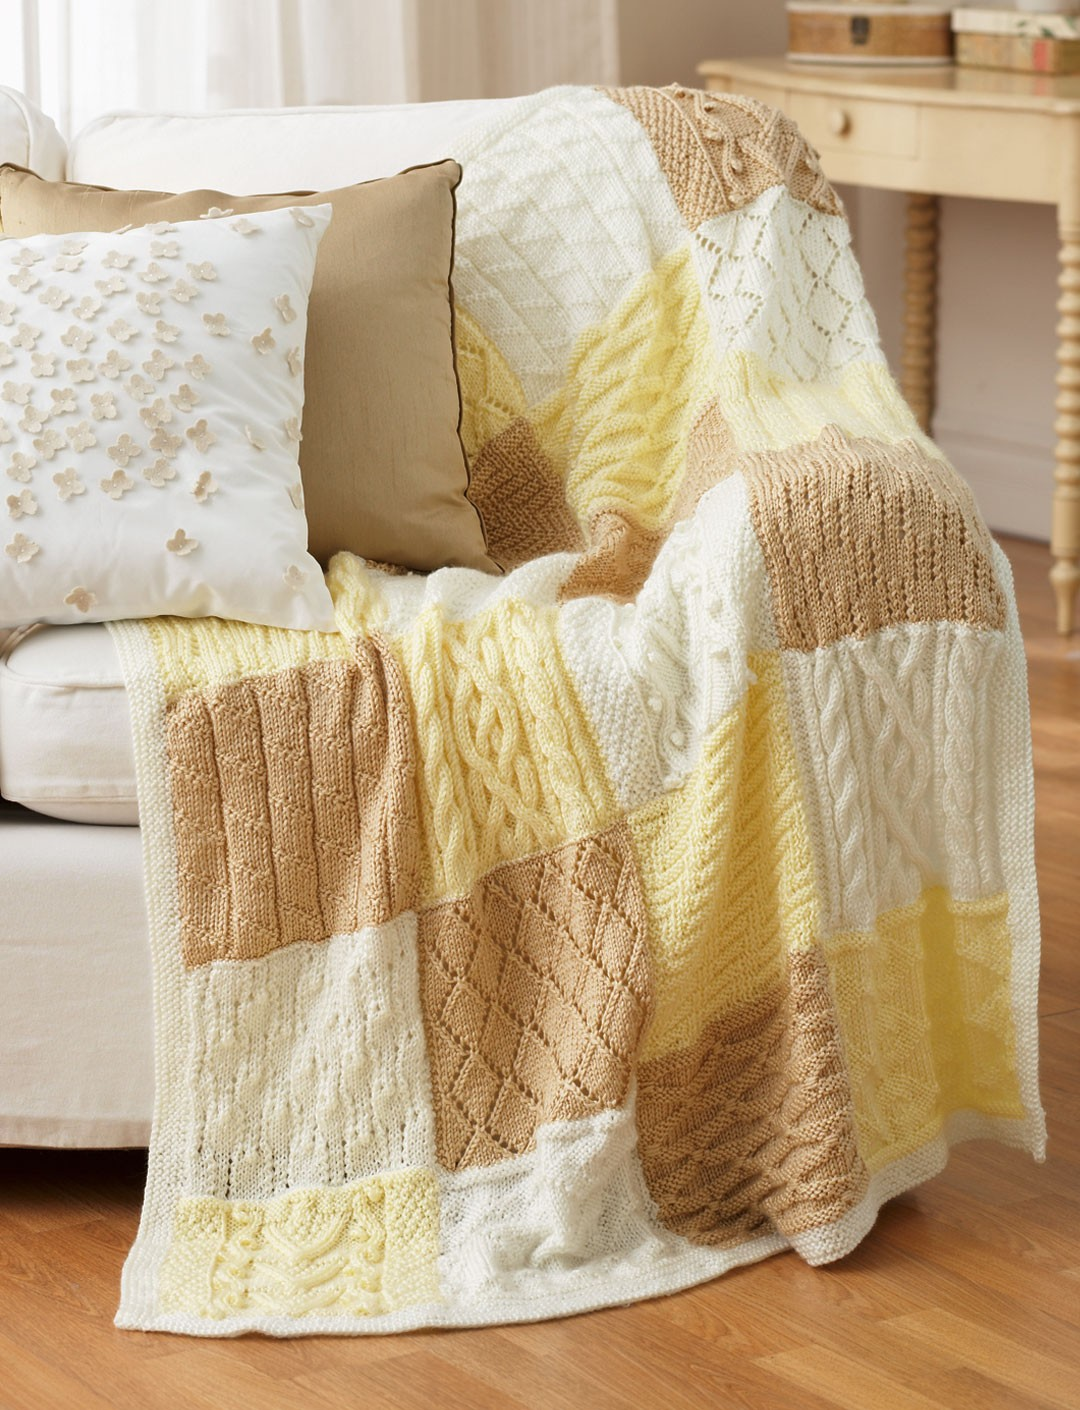 Bernat Knitting Patterns Free : Bernat Mystery Afghan Knit-Along, Knit Pattern Yarnspirations